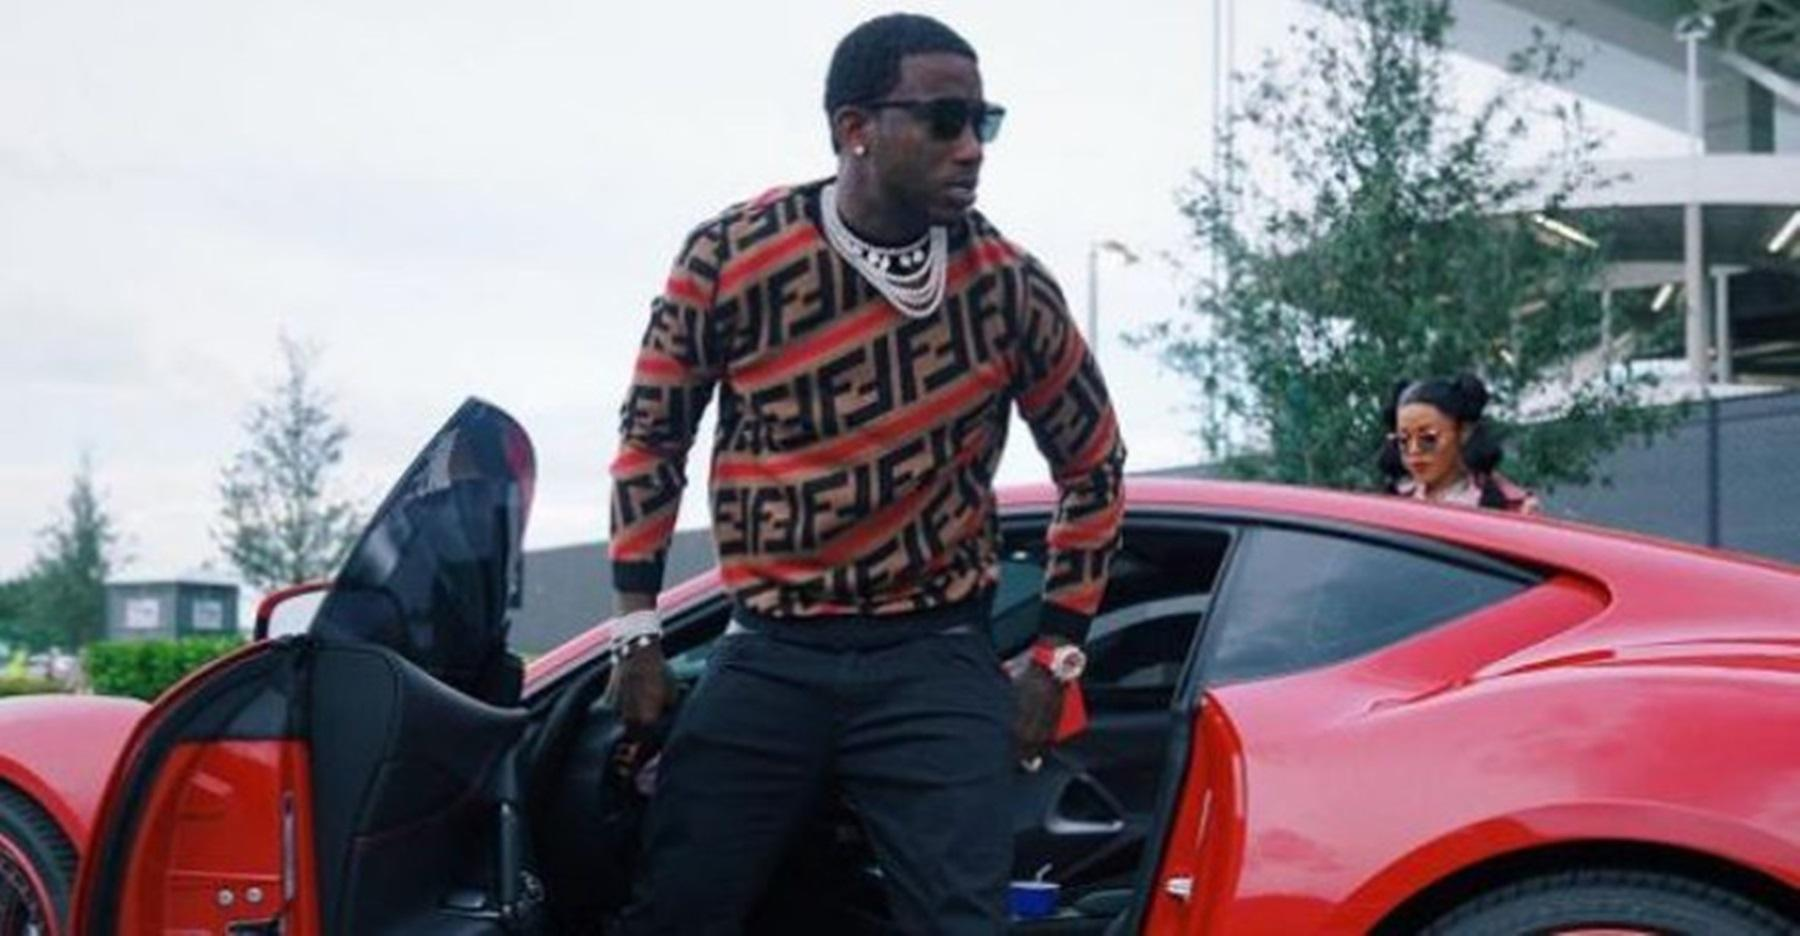 Gucci Mane Claims Club Was Disrespectful In New Video And This Is What He Plans To Do About It